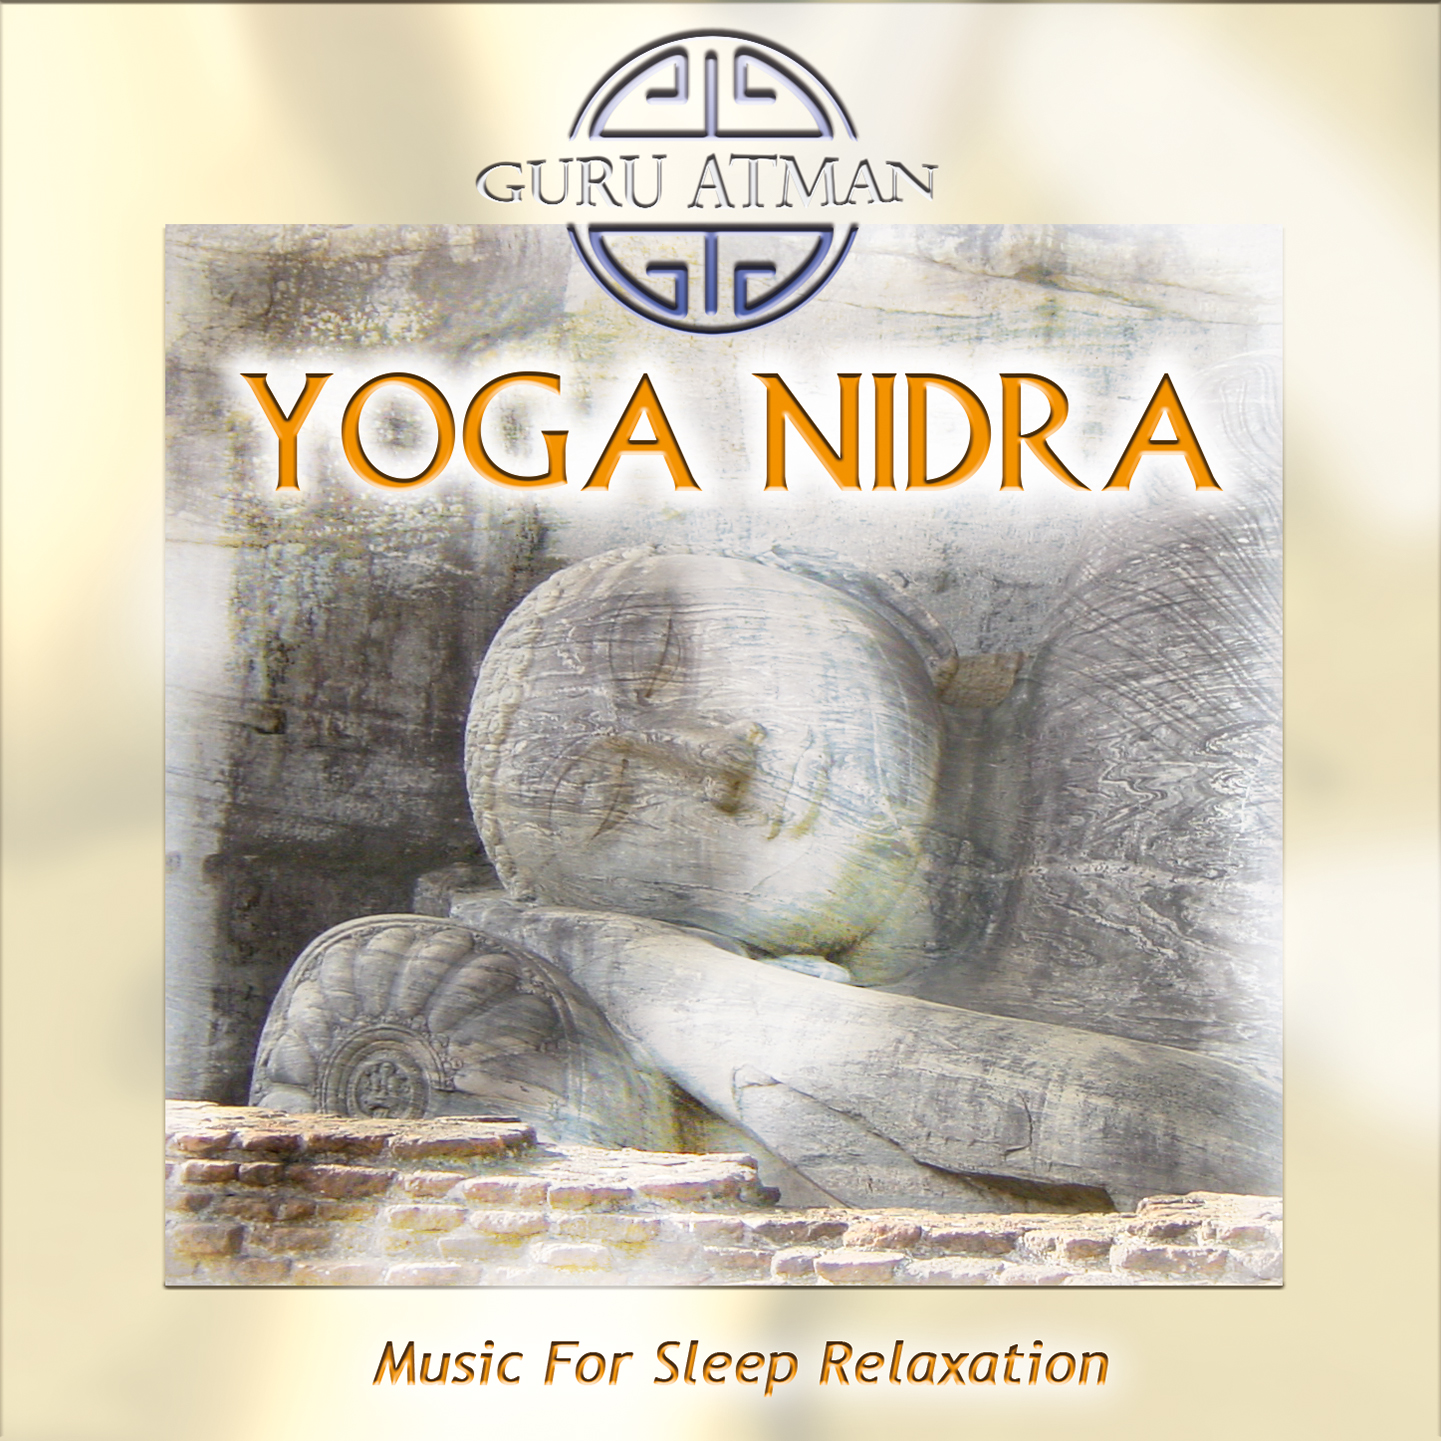 CD Yoga Nidra Music By Guru Atman